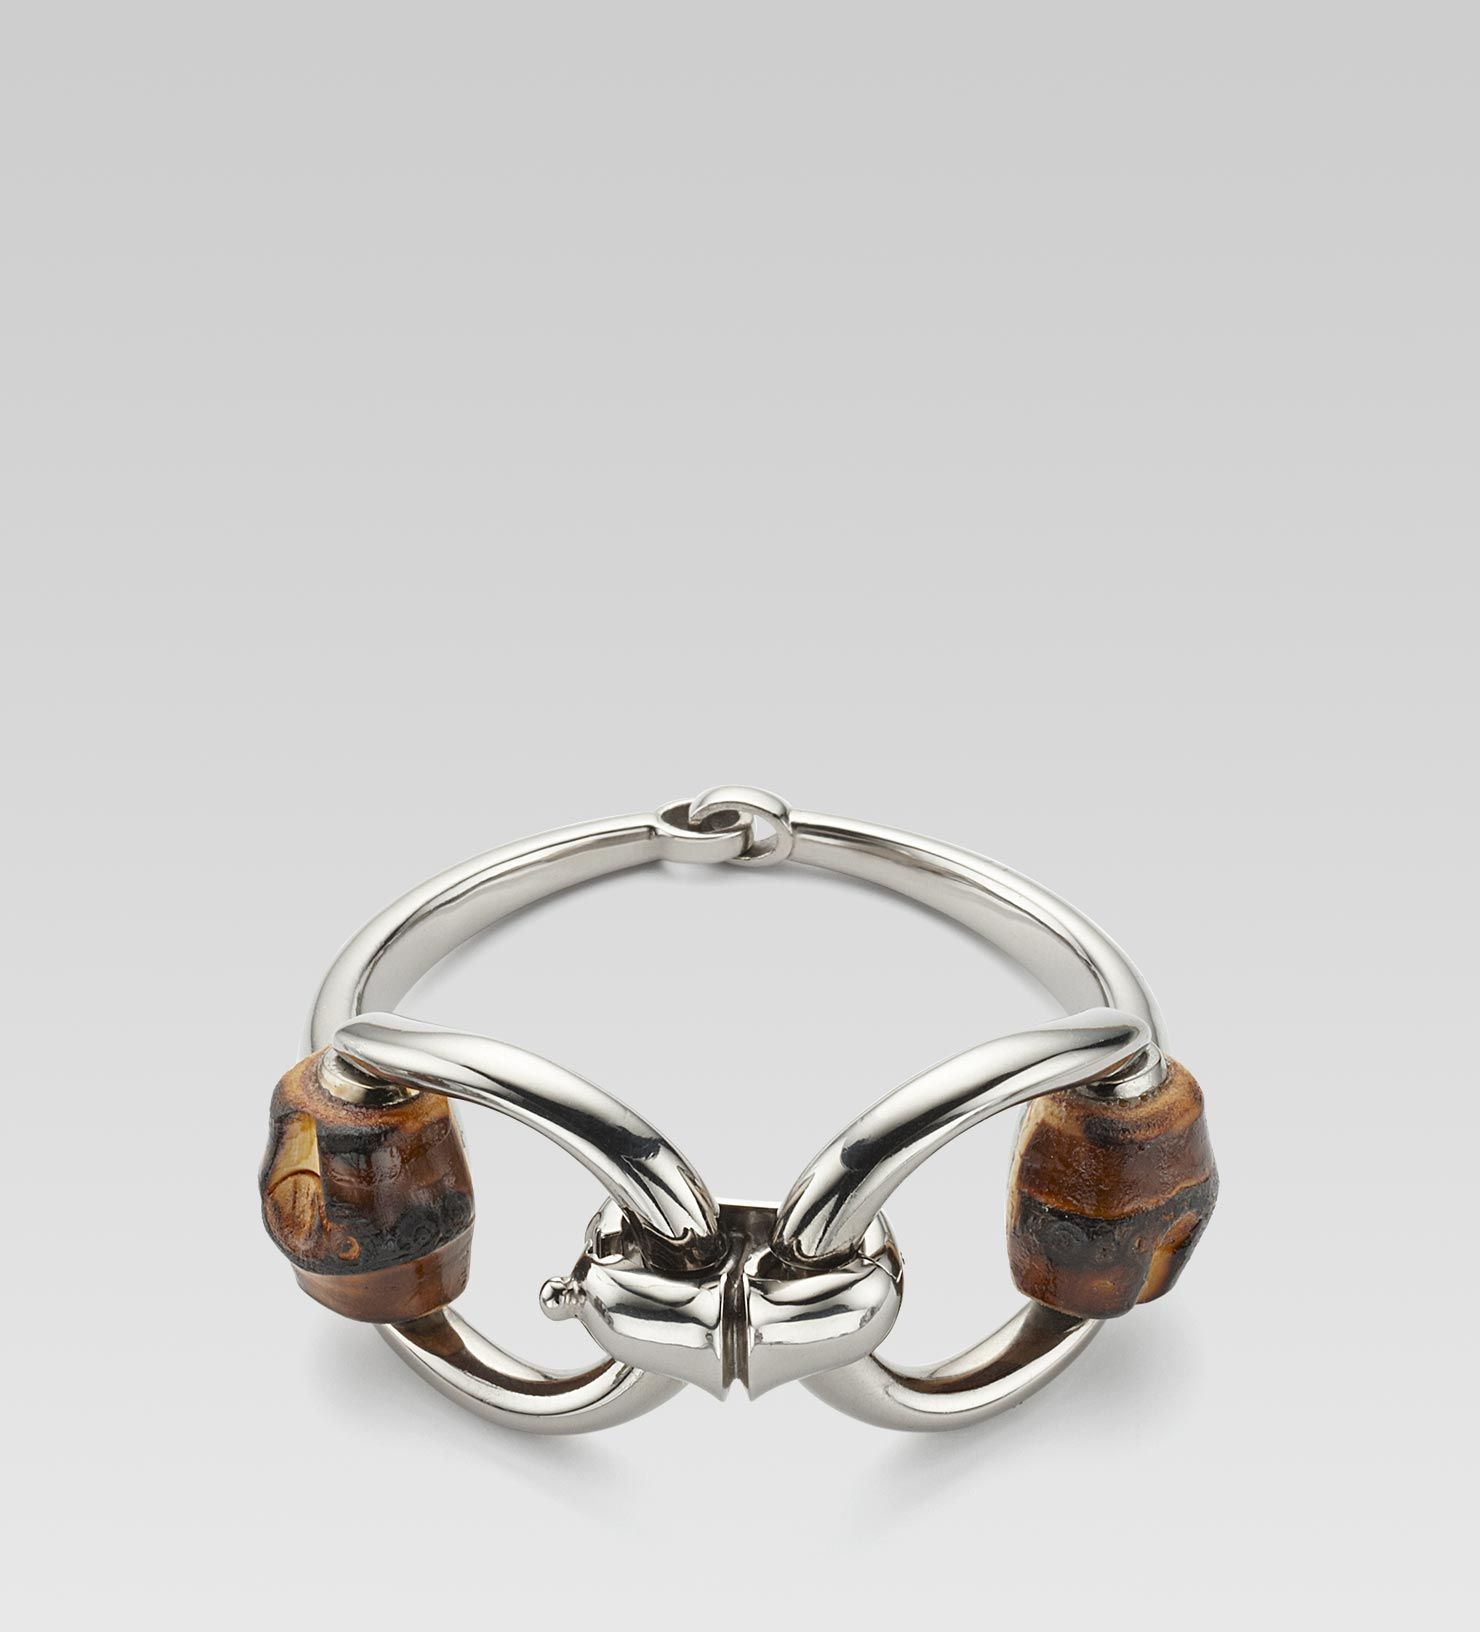 381bc87e7 Gucci Bamboo Bracelet with Horsebit motif | Jewelry in 2019 | Gucci ...